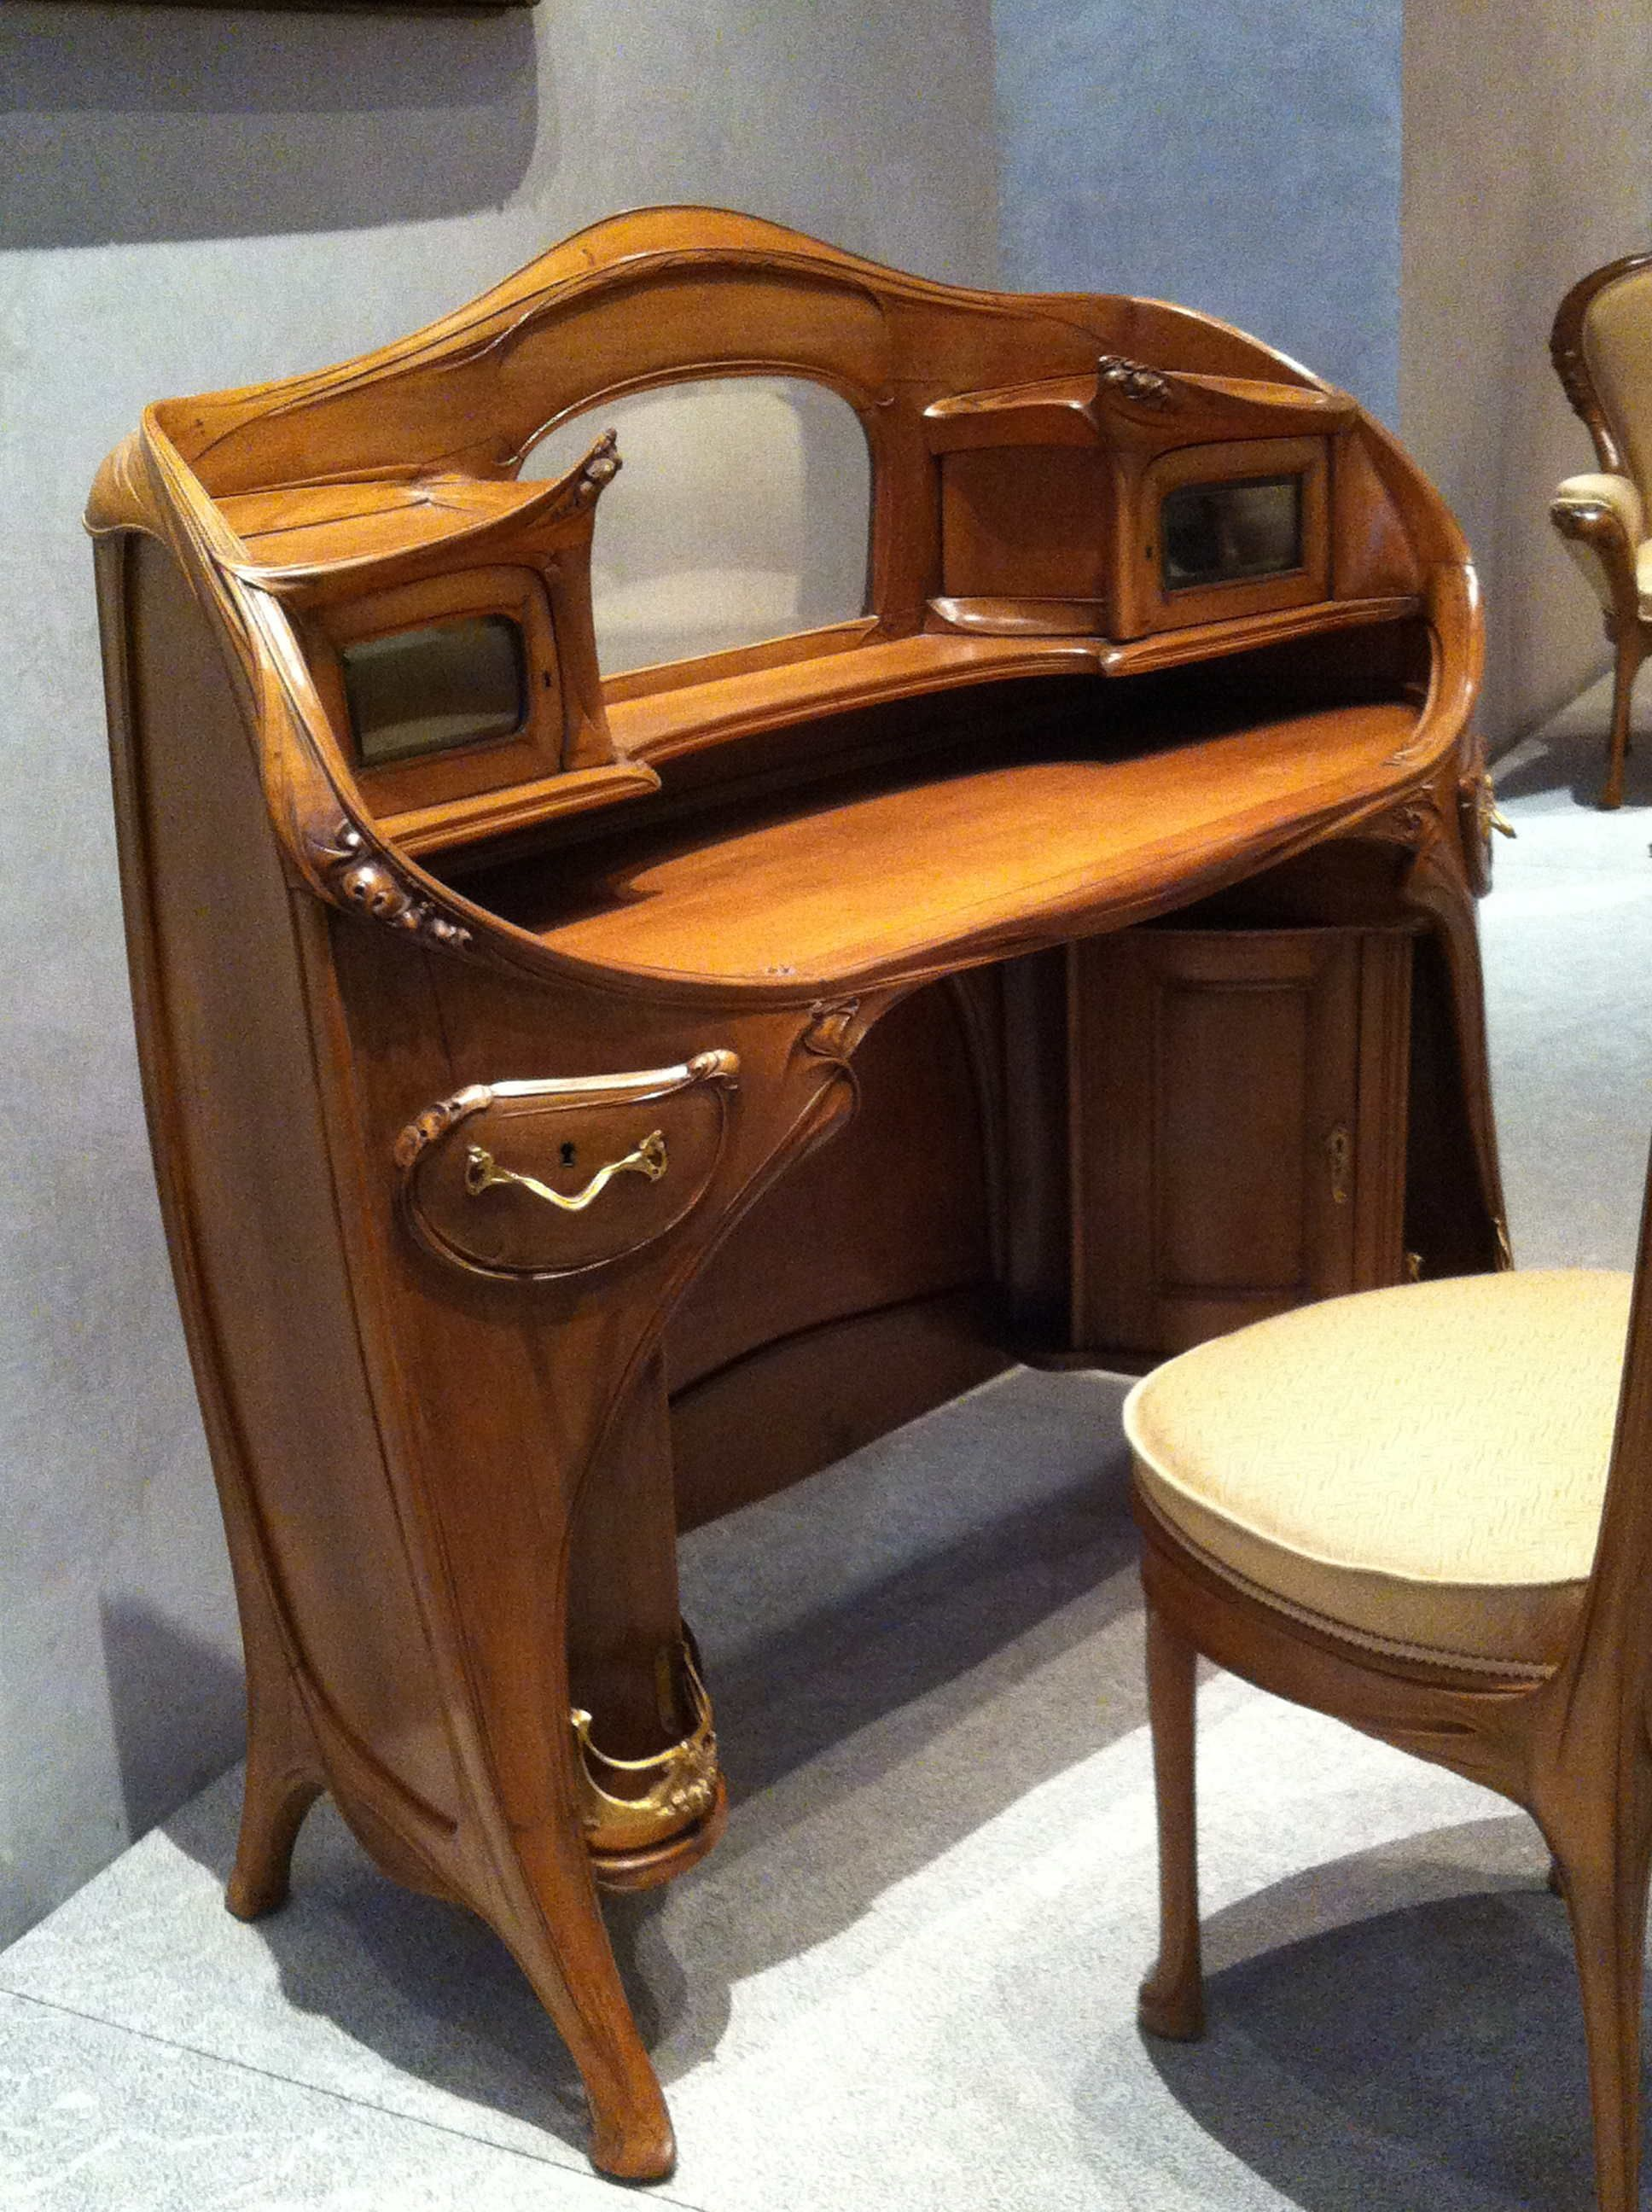 bureau art nouveau hector guimard hector guimard pinterest bureaus. Black Bedroom Furniture Sets. Home Design Ideas